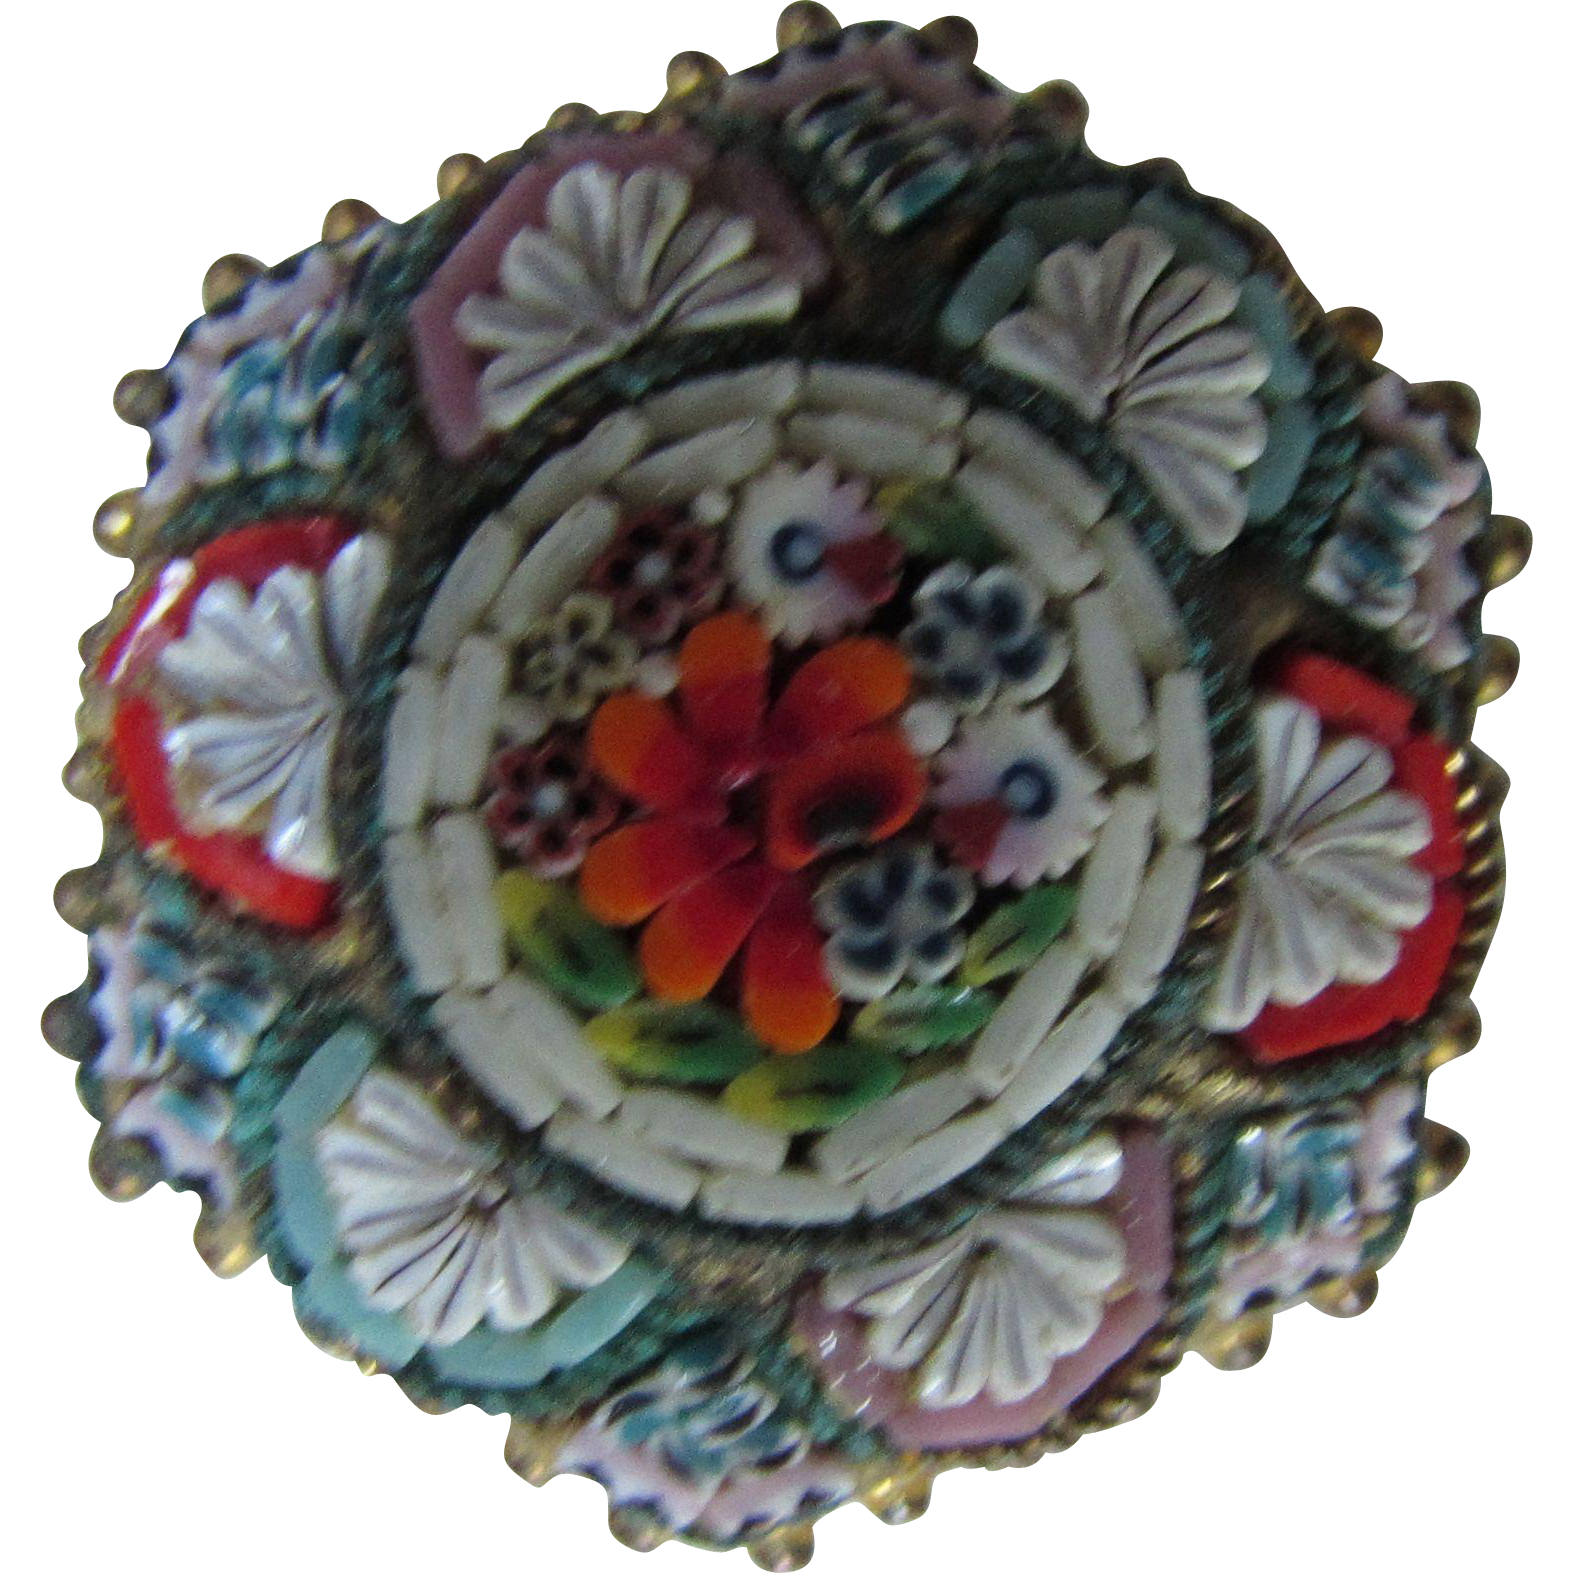 Micro Mosaic Flower Six Sided Brooch Made in Italy